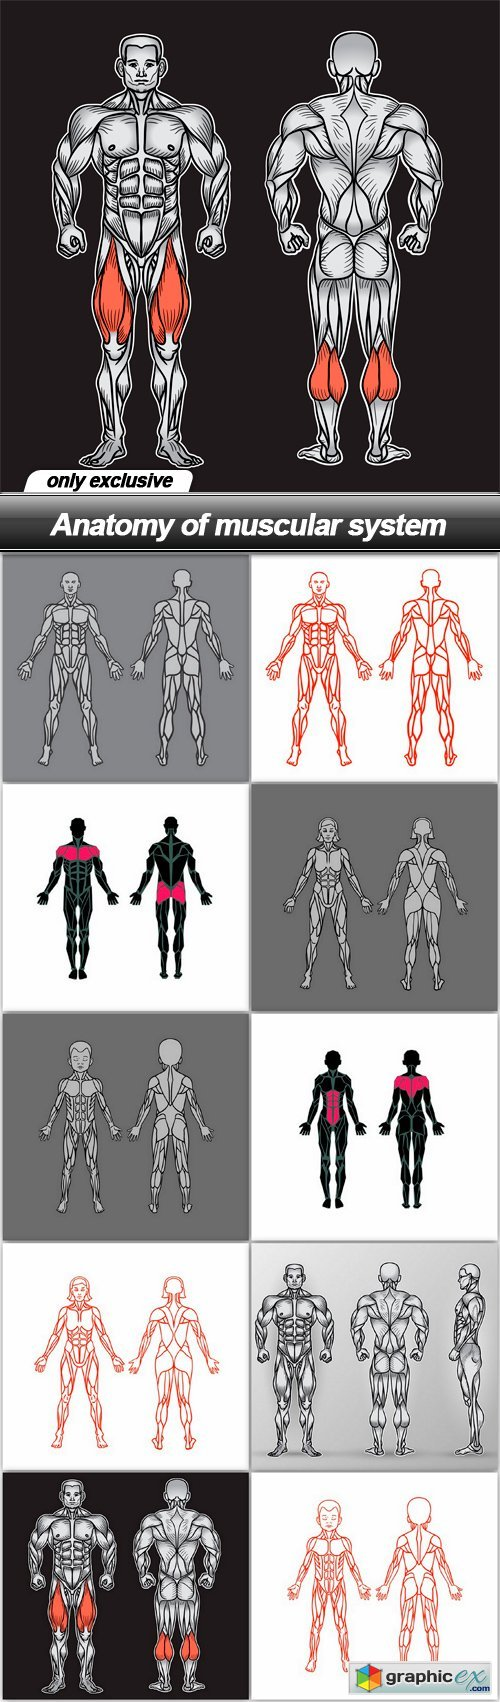 Anatomy of muscular system - 10 EPS